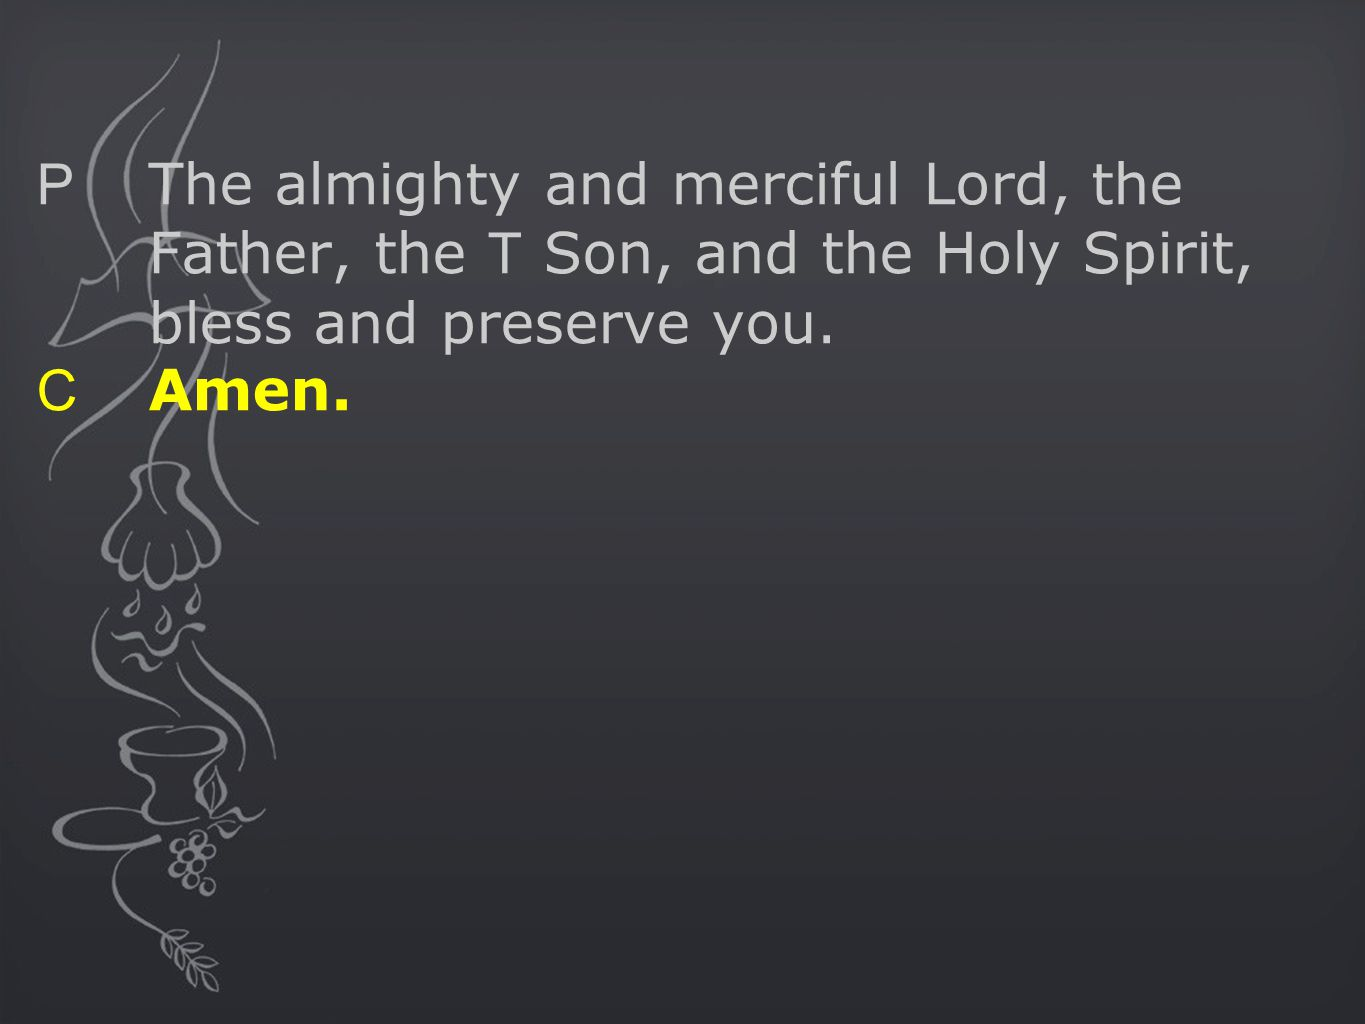 P The almighty and merciful Lord, the Father, the T Son, and the Holy Spirit, bless and preserve you.